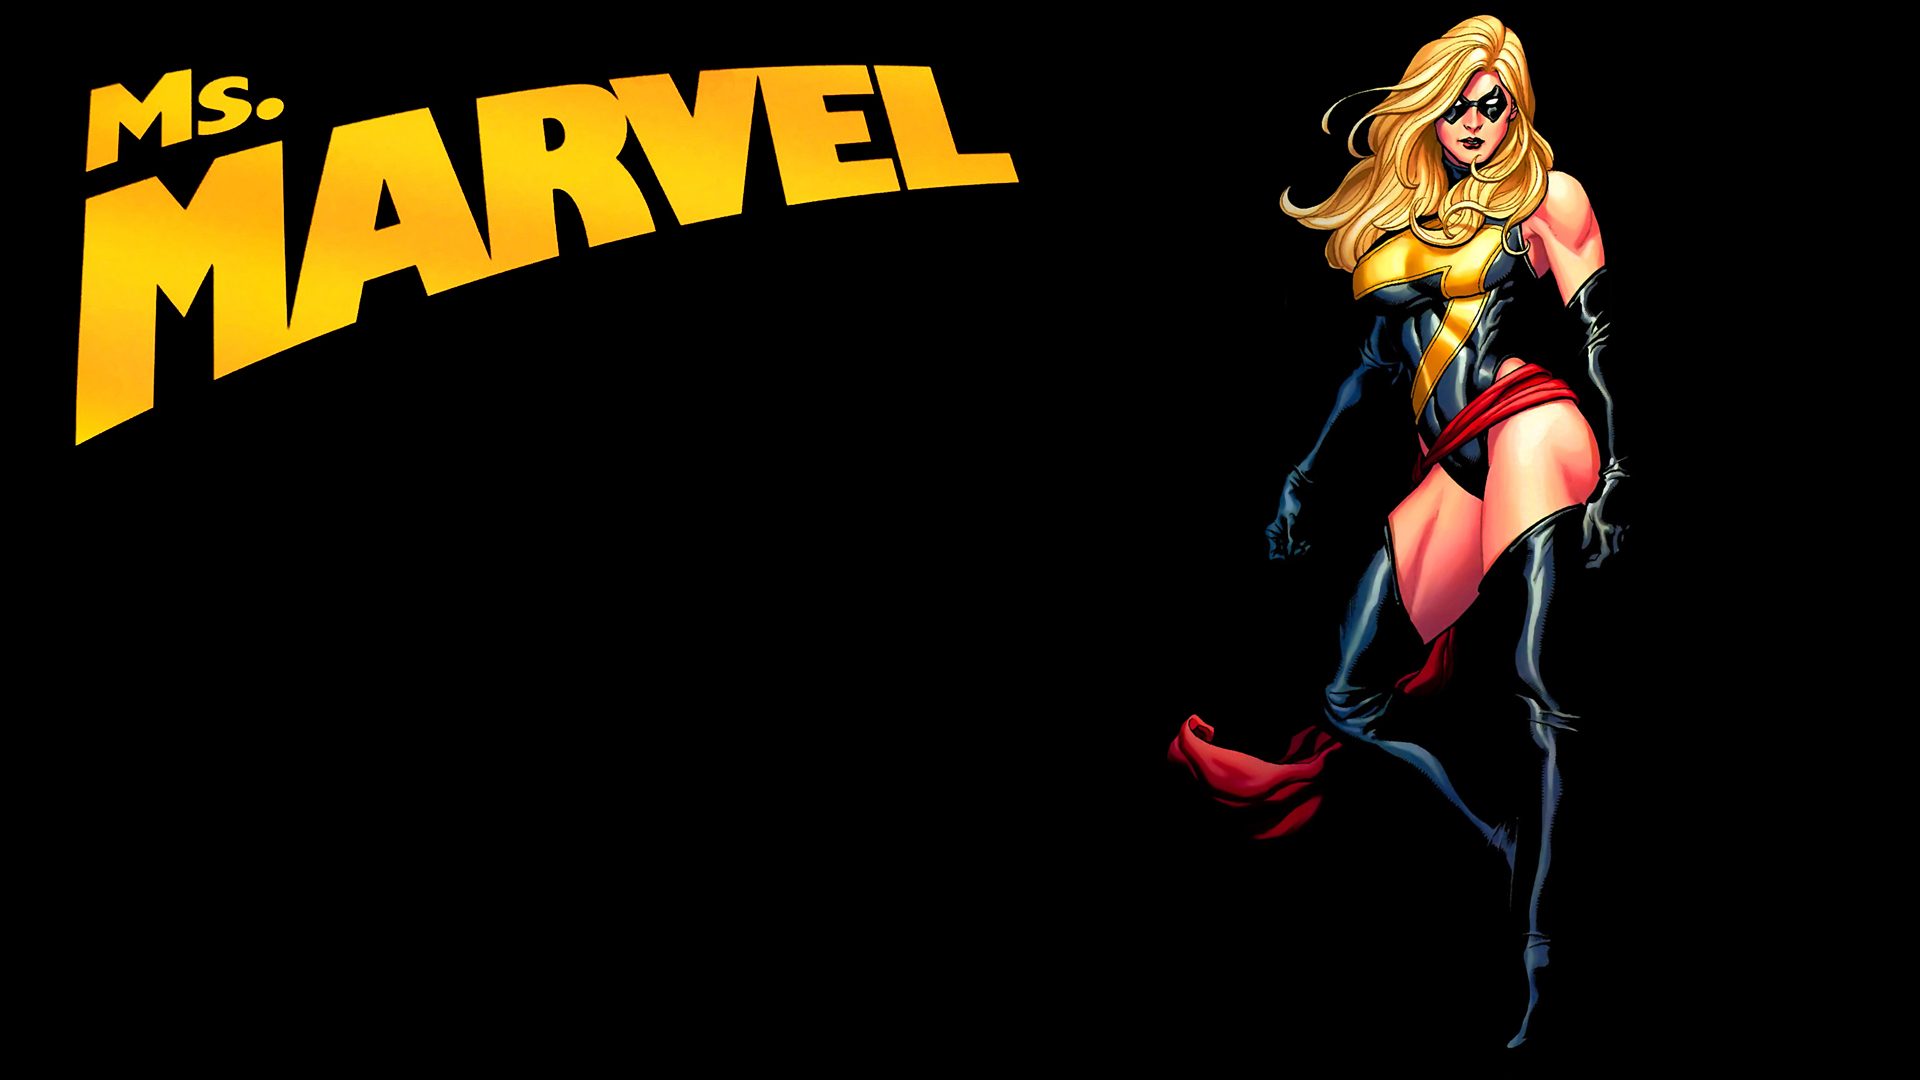 Marvel Wallpapers 1920x1080 - WallpaperSafari